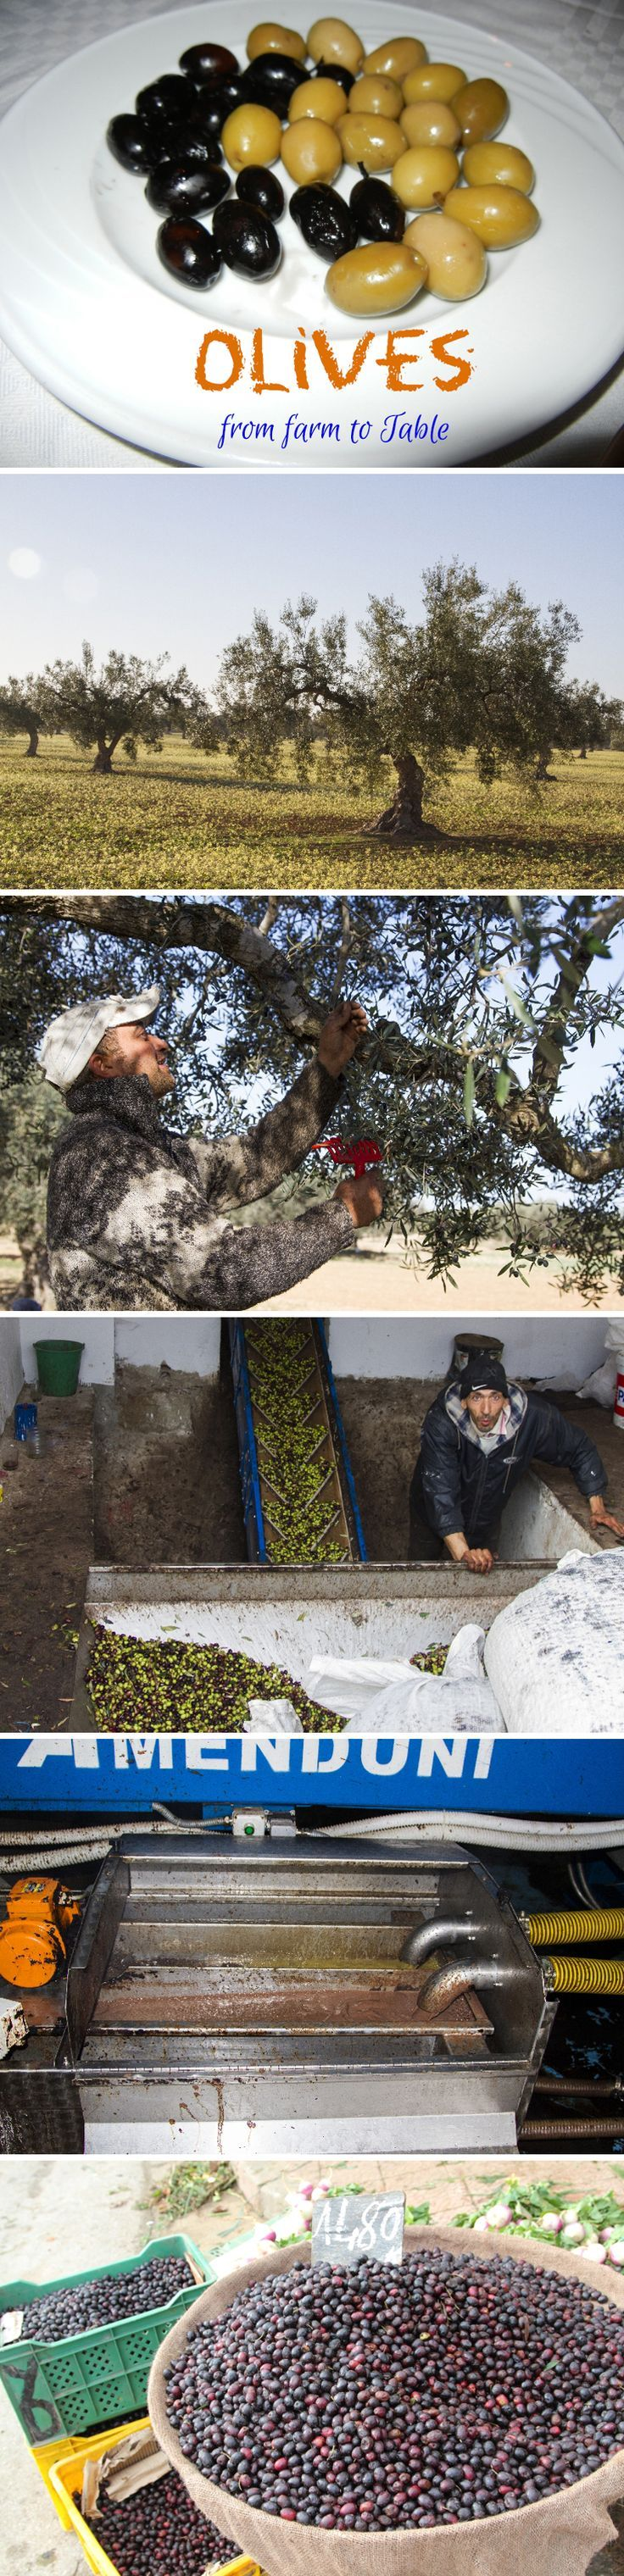 Tunisia Olives from Tree to Table - A Photo Essay